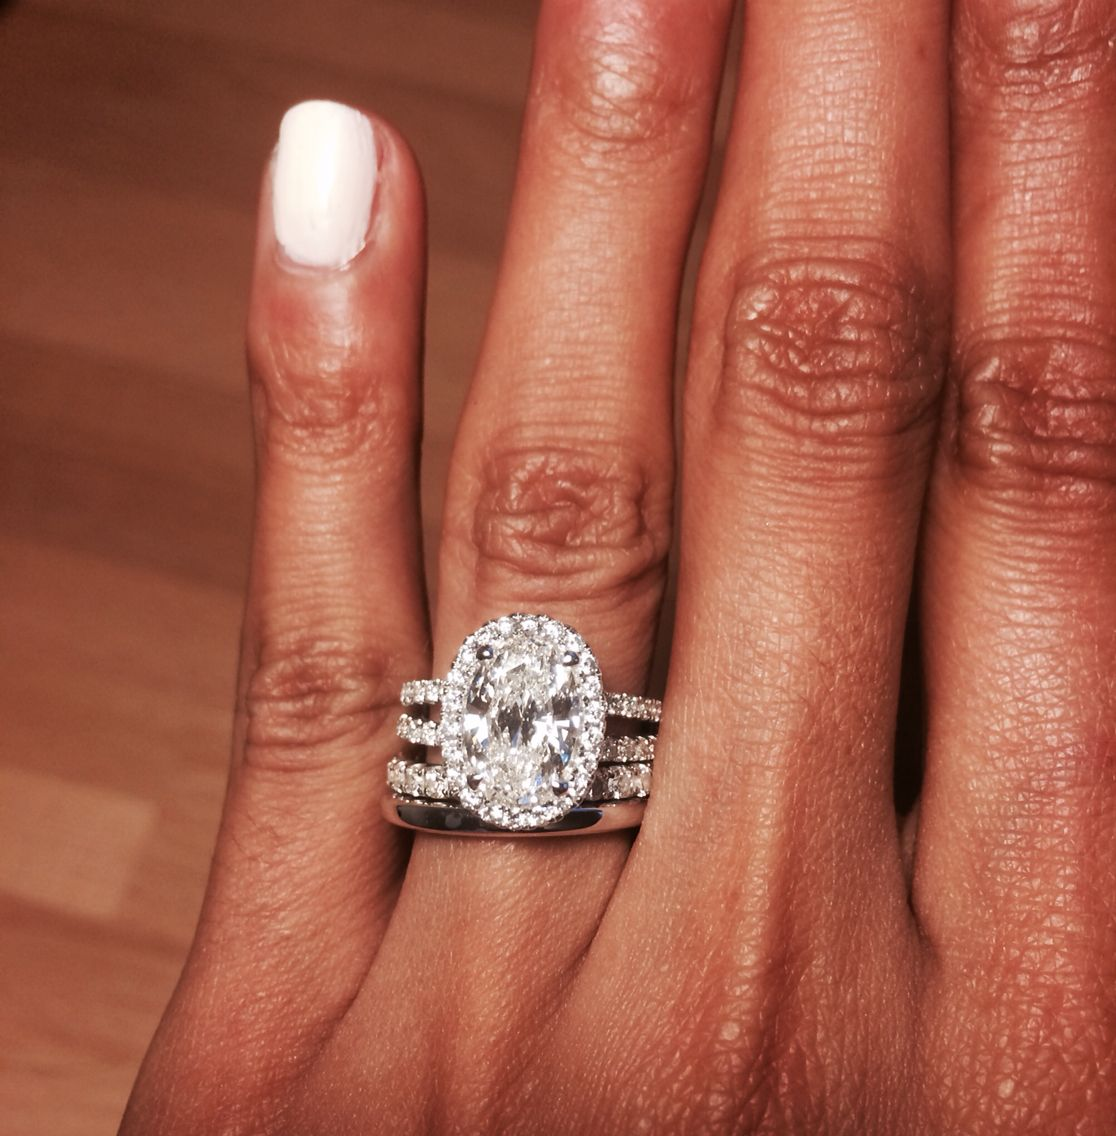 My complete bridal set is finally complete Oval diamond